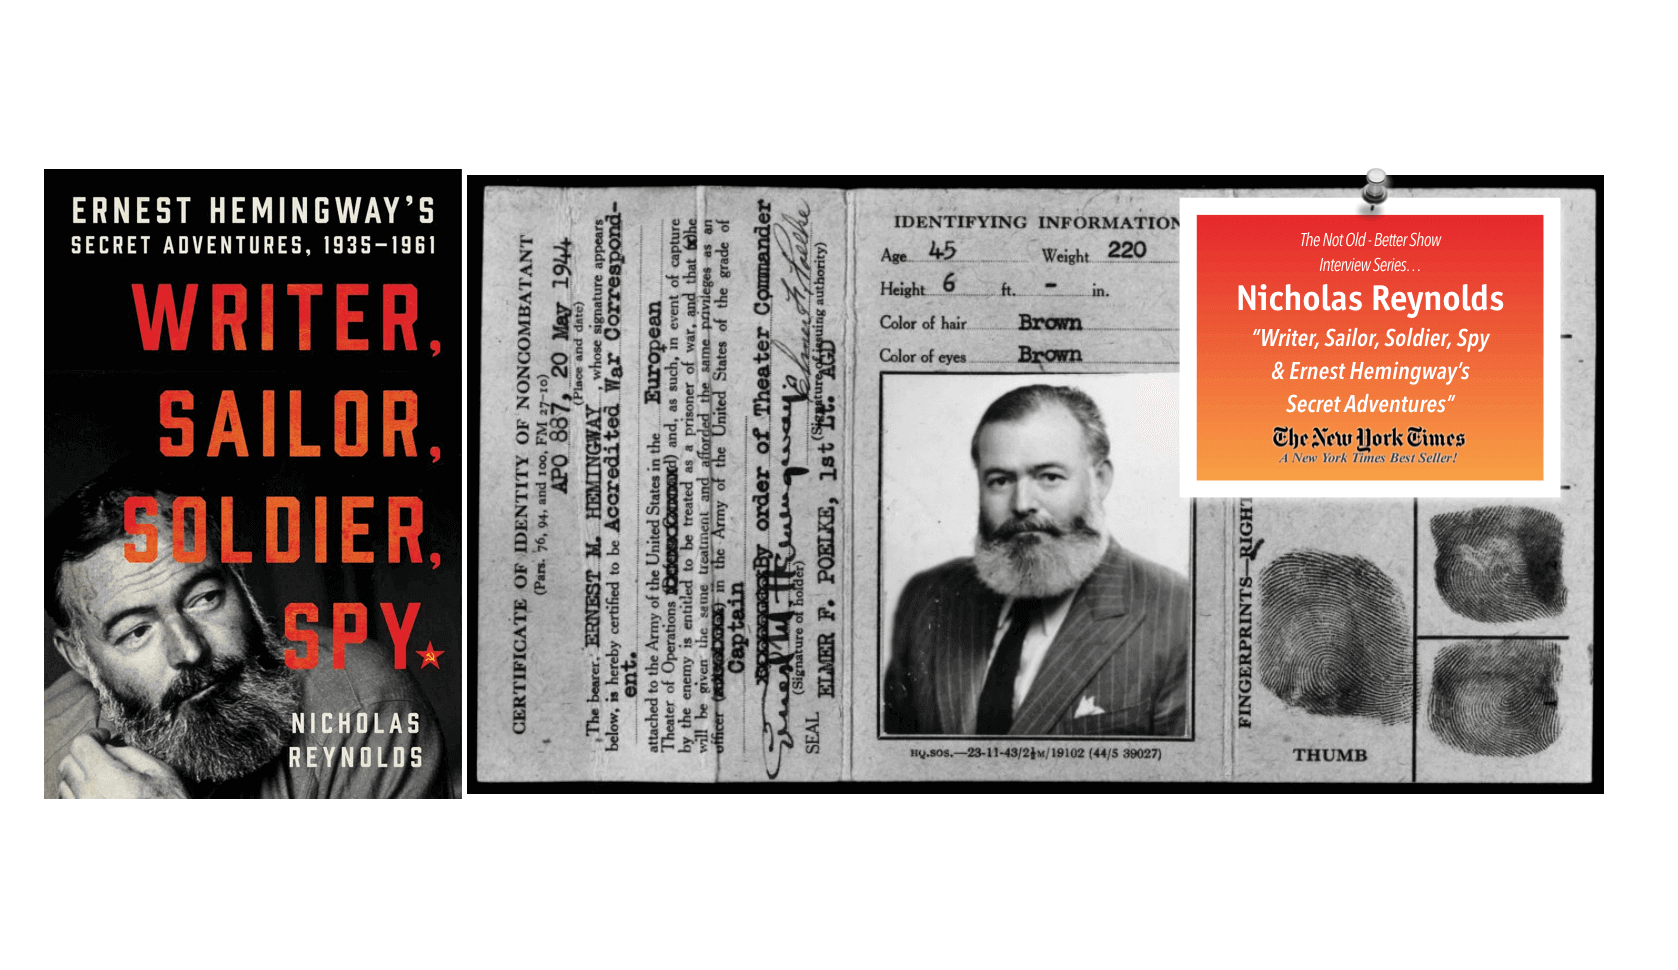 Ernest Hemingway: Author & SPY! The Not Old Better Show